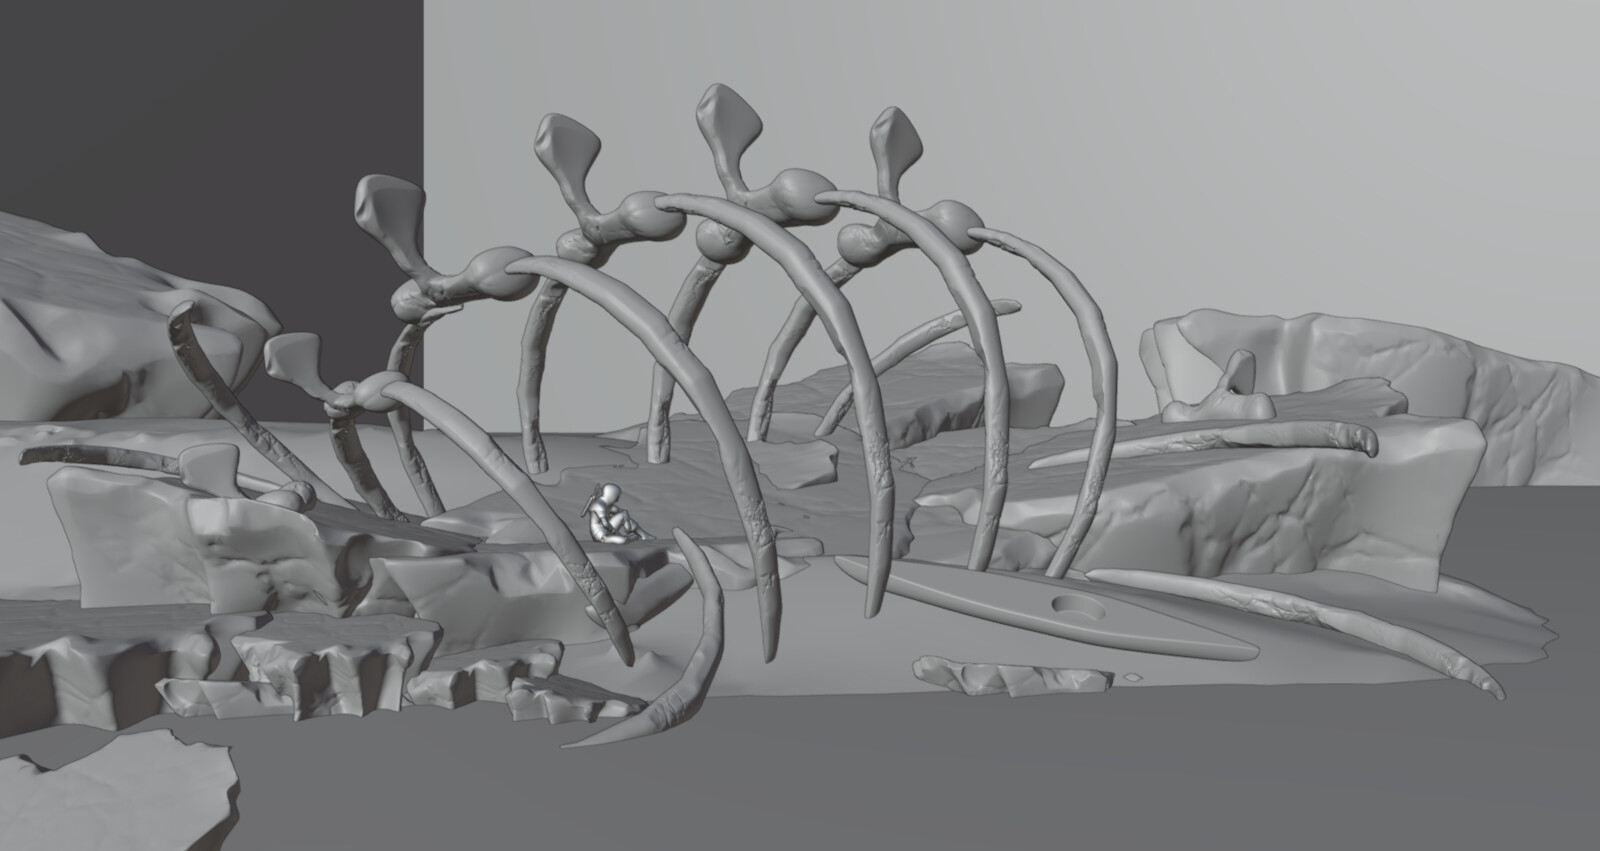 Blender viewport, the bones and ice sheets are sculpted, supplemented with some assets from Megascans